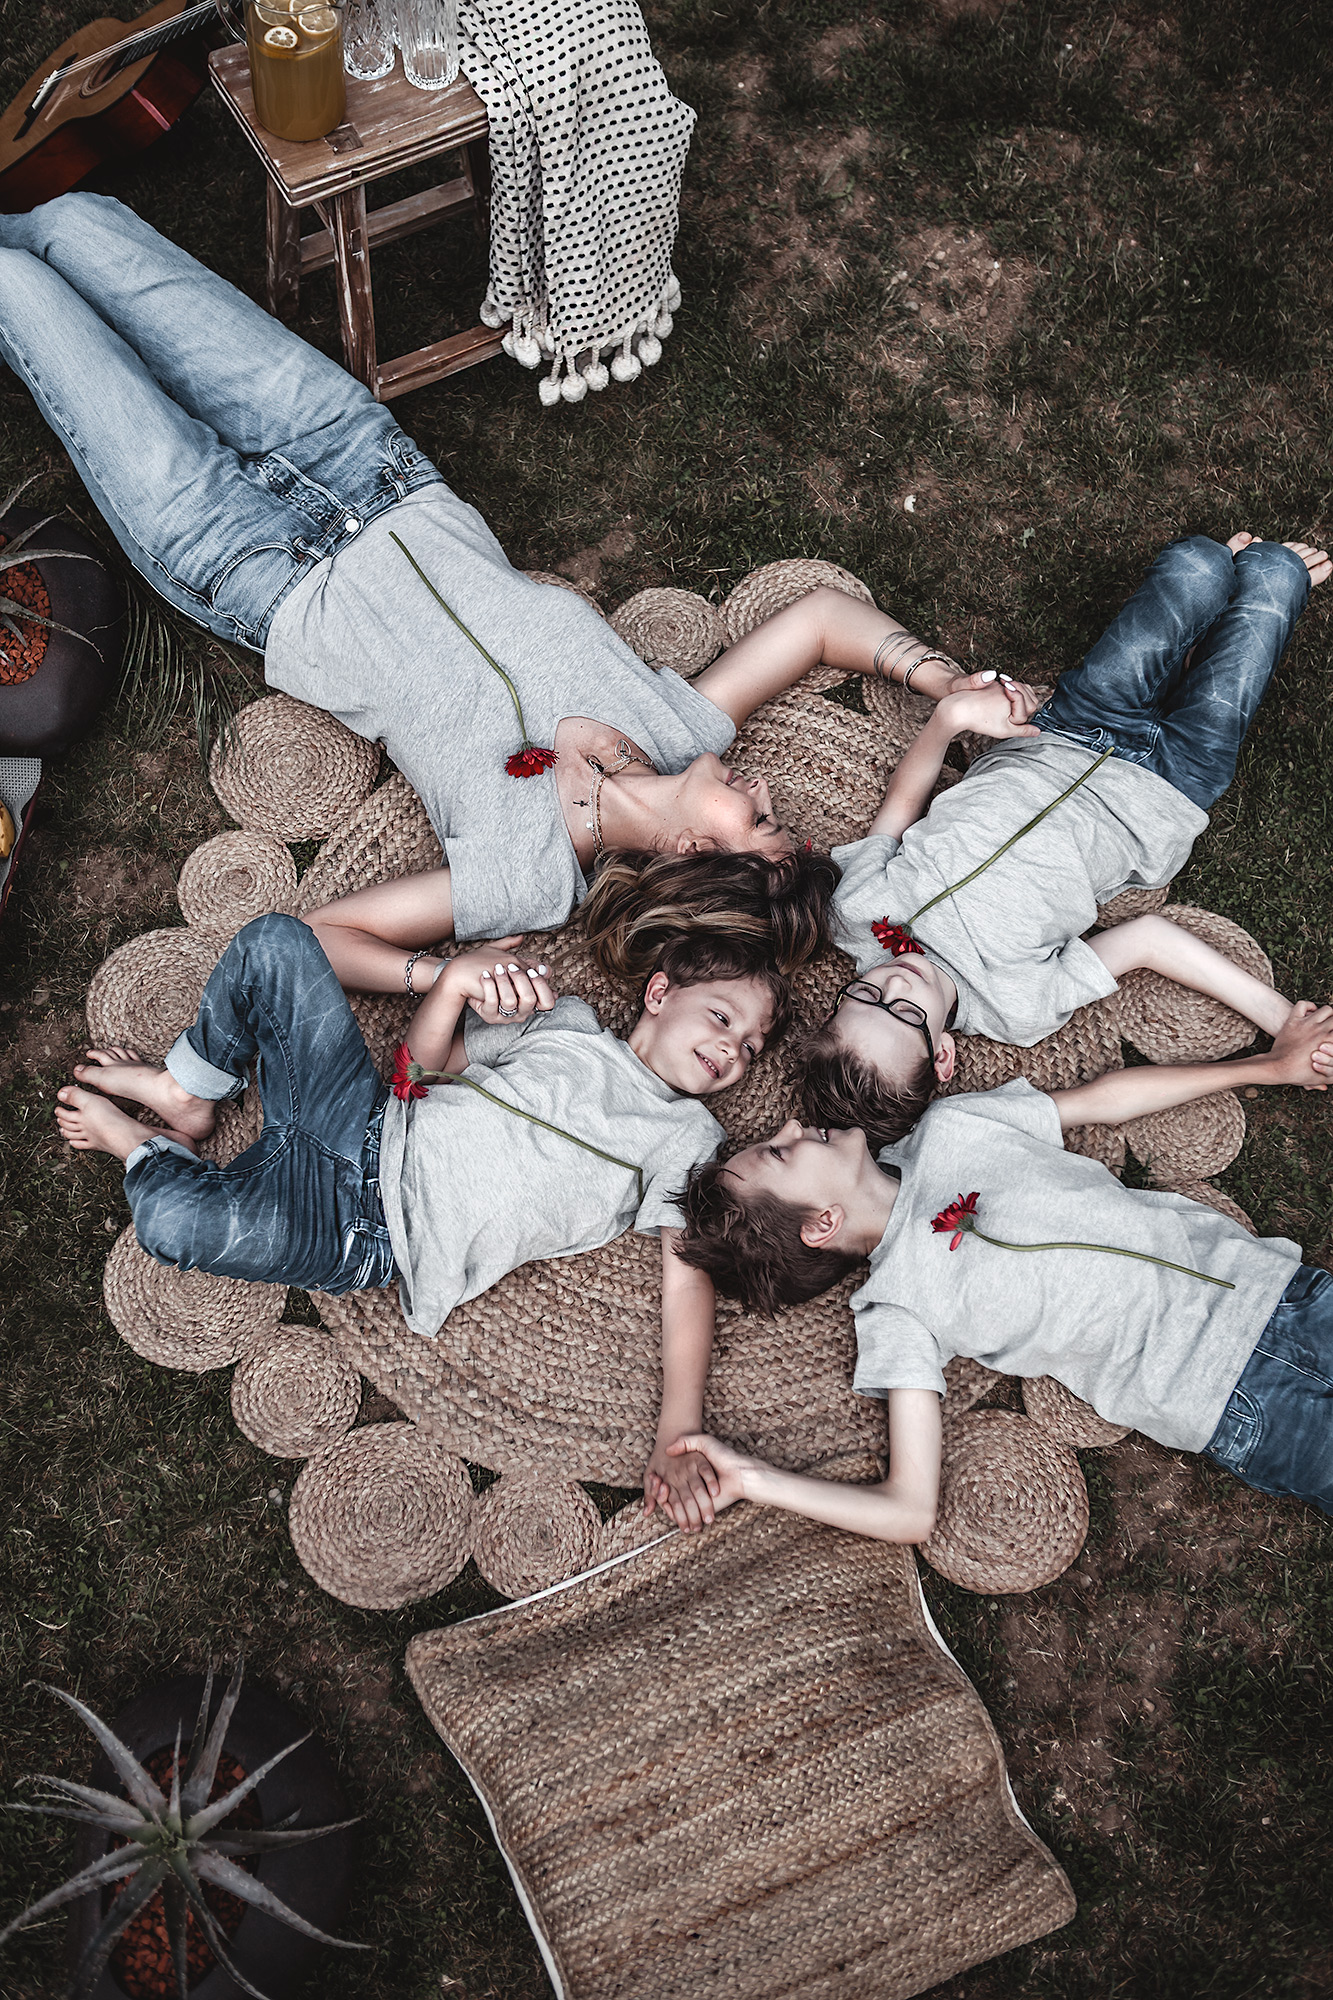 With these tips and decorative elements create a simple picnic decor in the garden and make the spot relaxing, familiar & inviting instantly. Family photo, mother and sons, picnic, garden, mother and kids, round jute rug. Mothers day. My Circle of life.